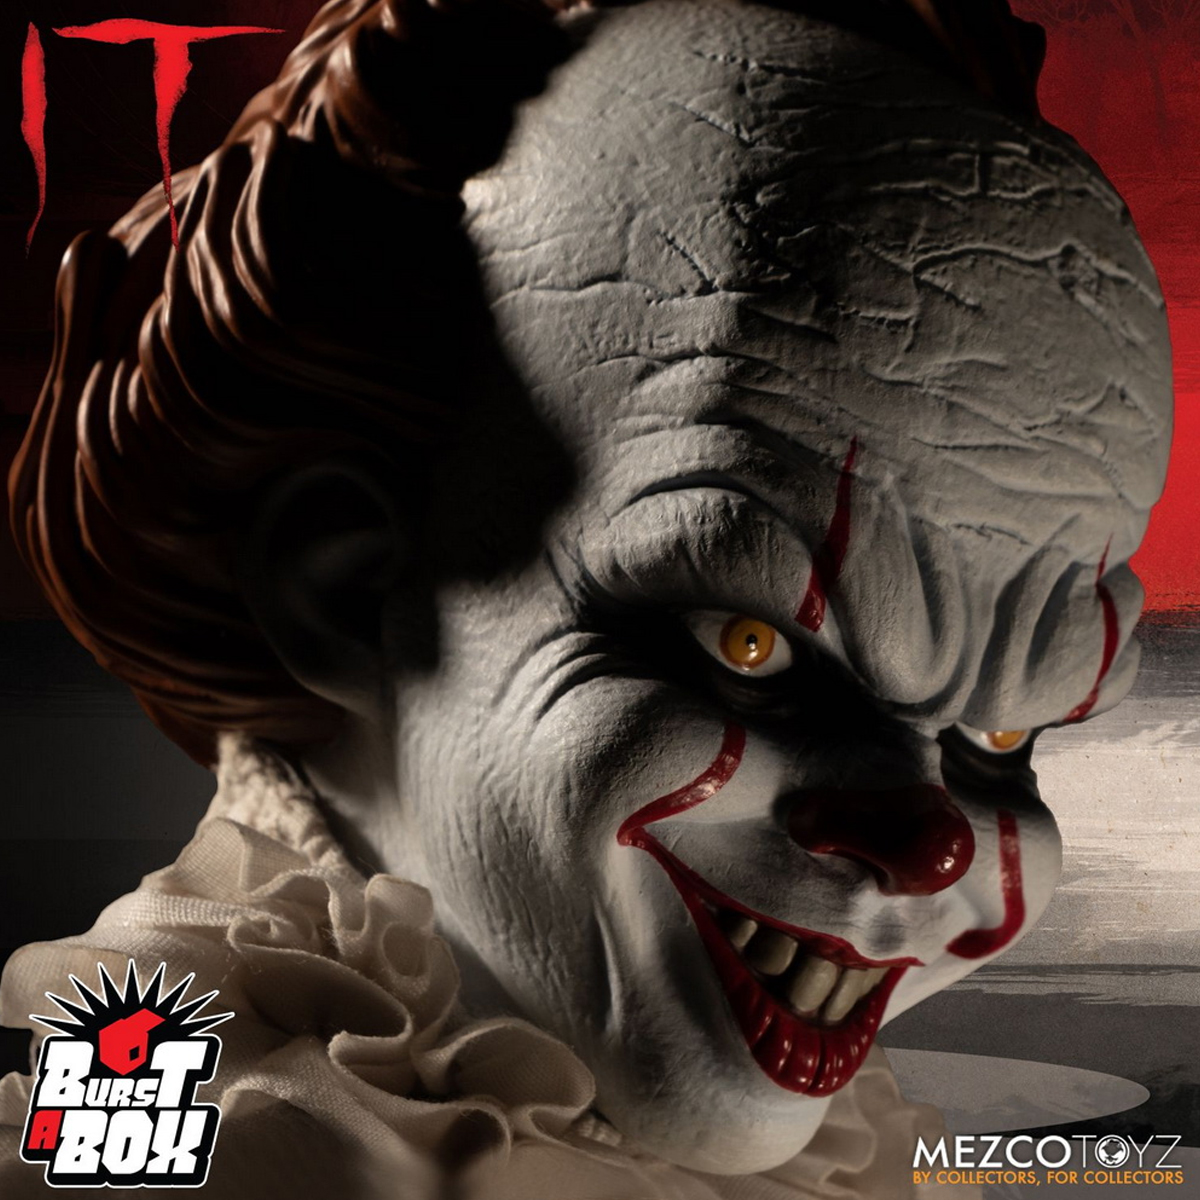 "Mezco Toyz 43022 Burst-A-Box Pennywise 14/"" Figure Prank Pop-up Box Collectible"